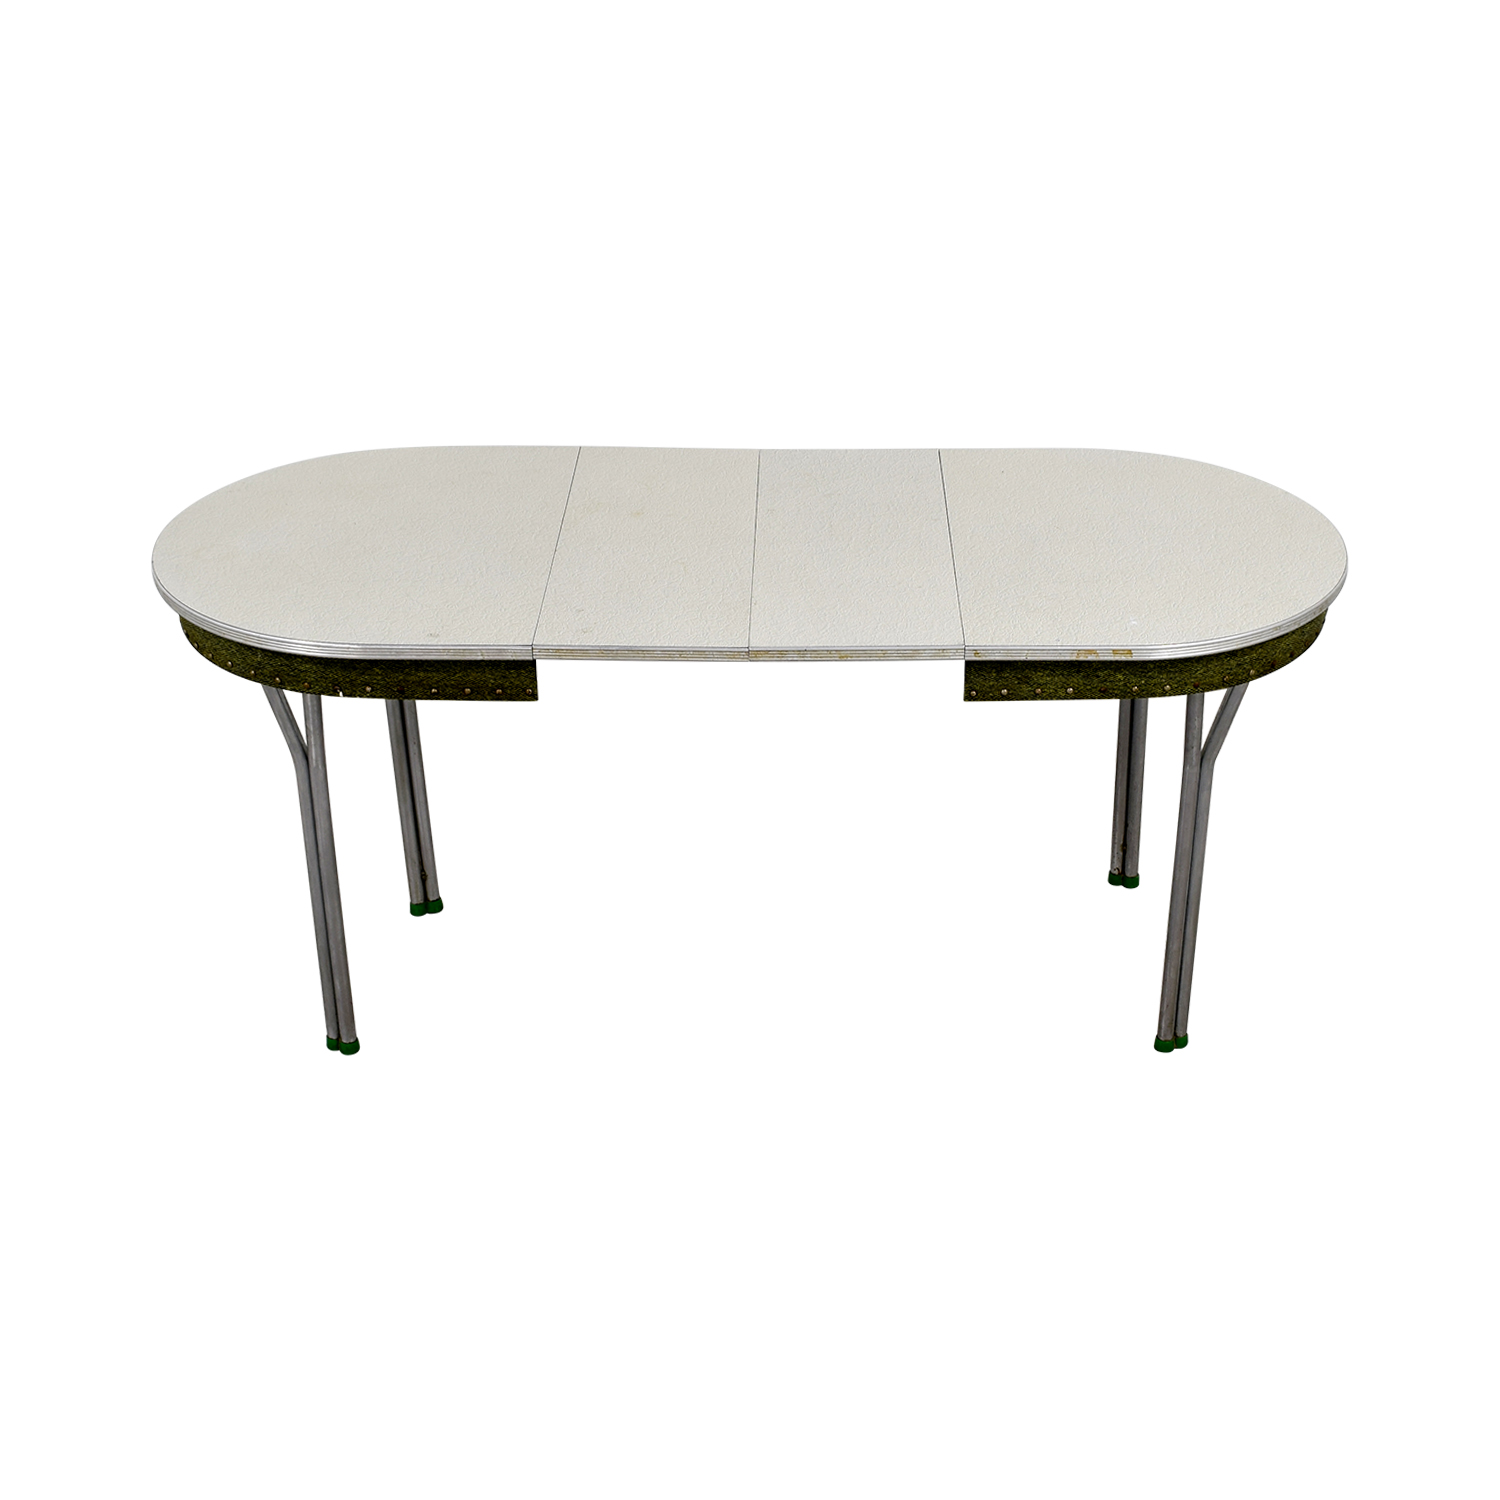 Vintage 1950s Green Formica Table with Inserts / Tables